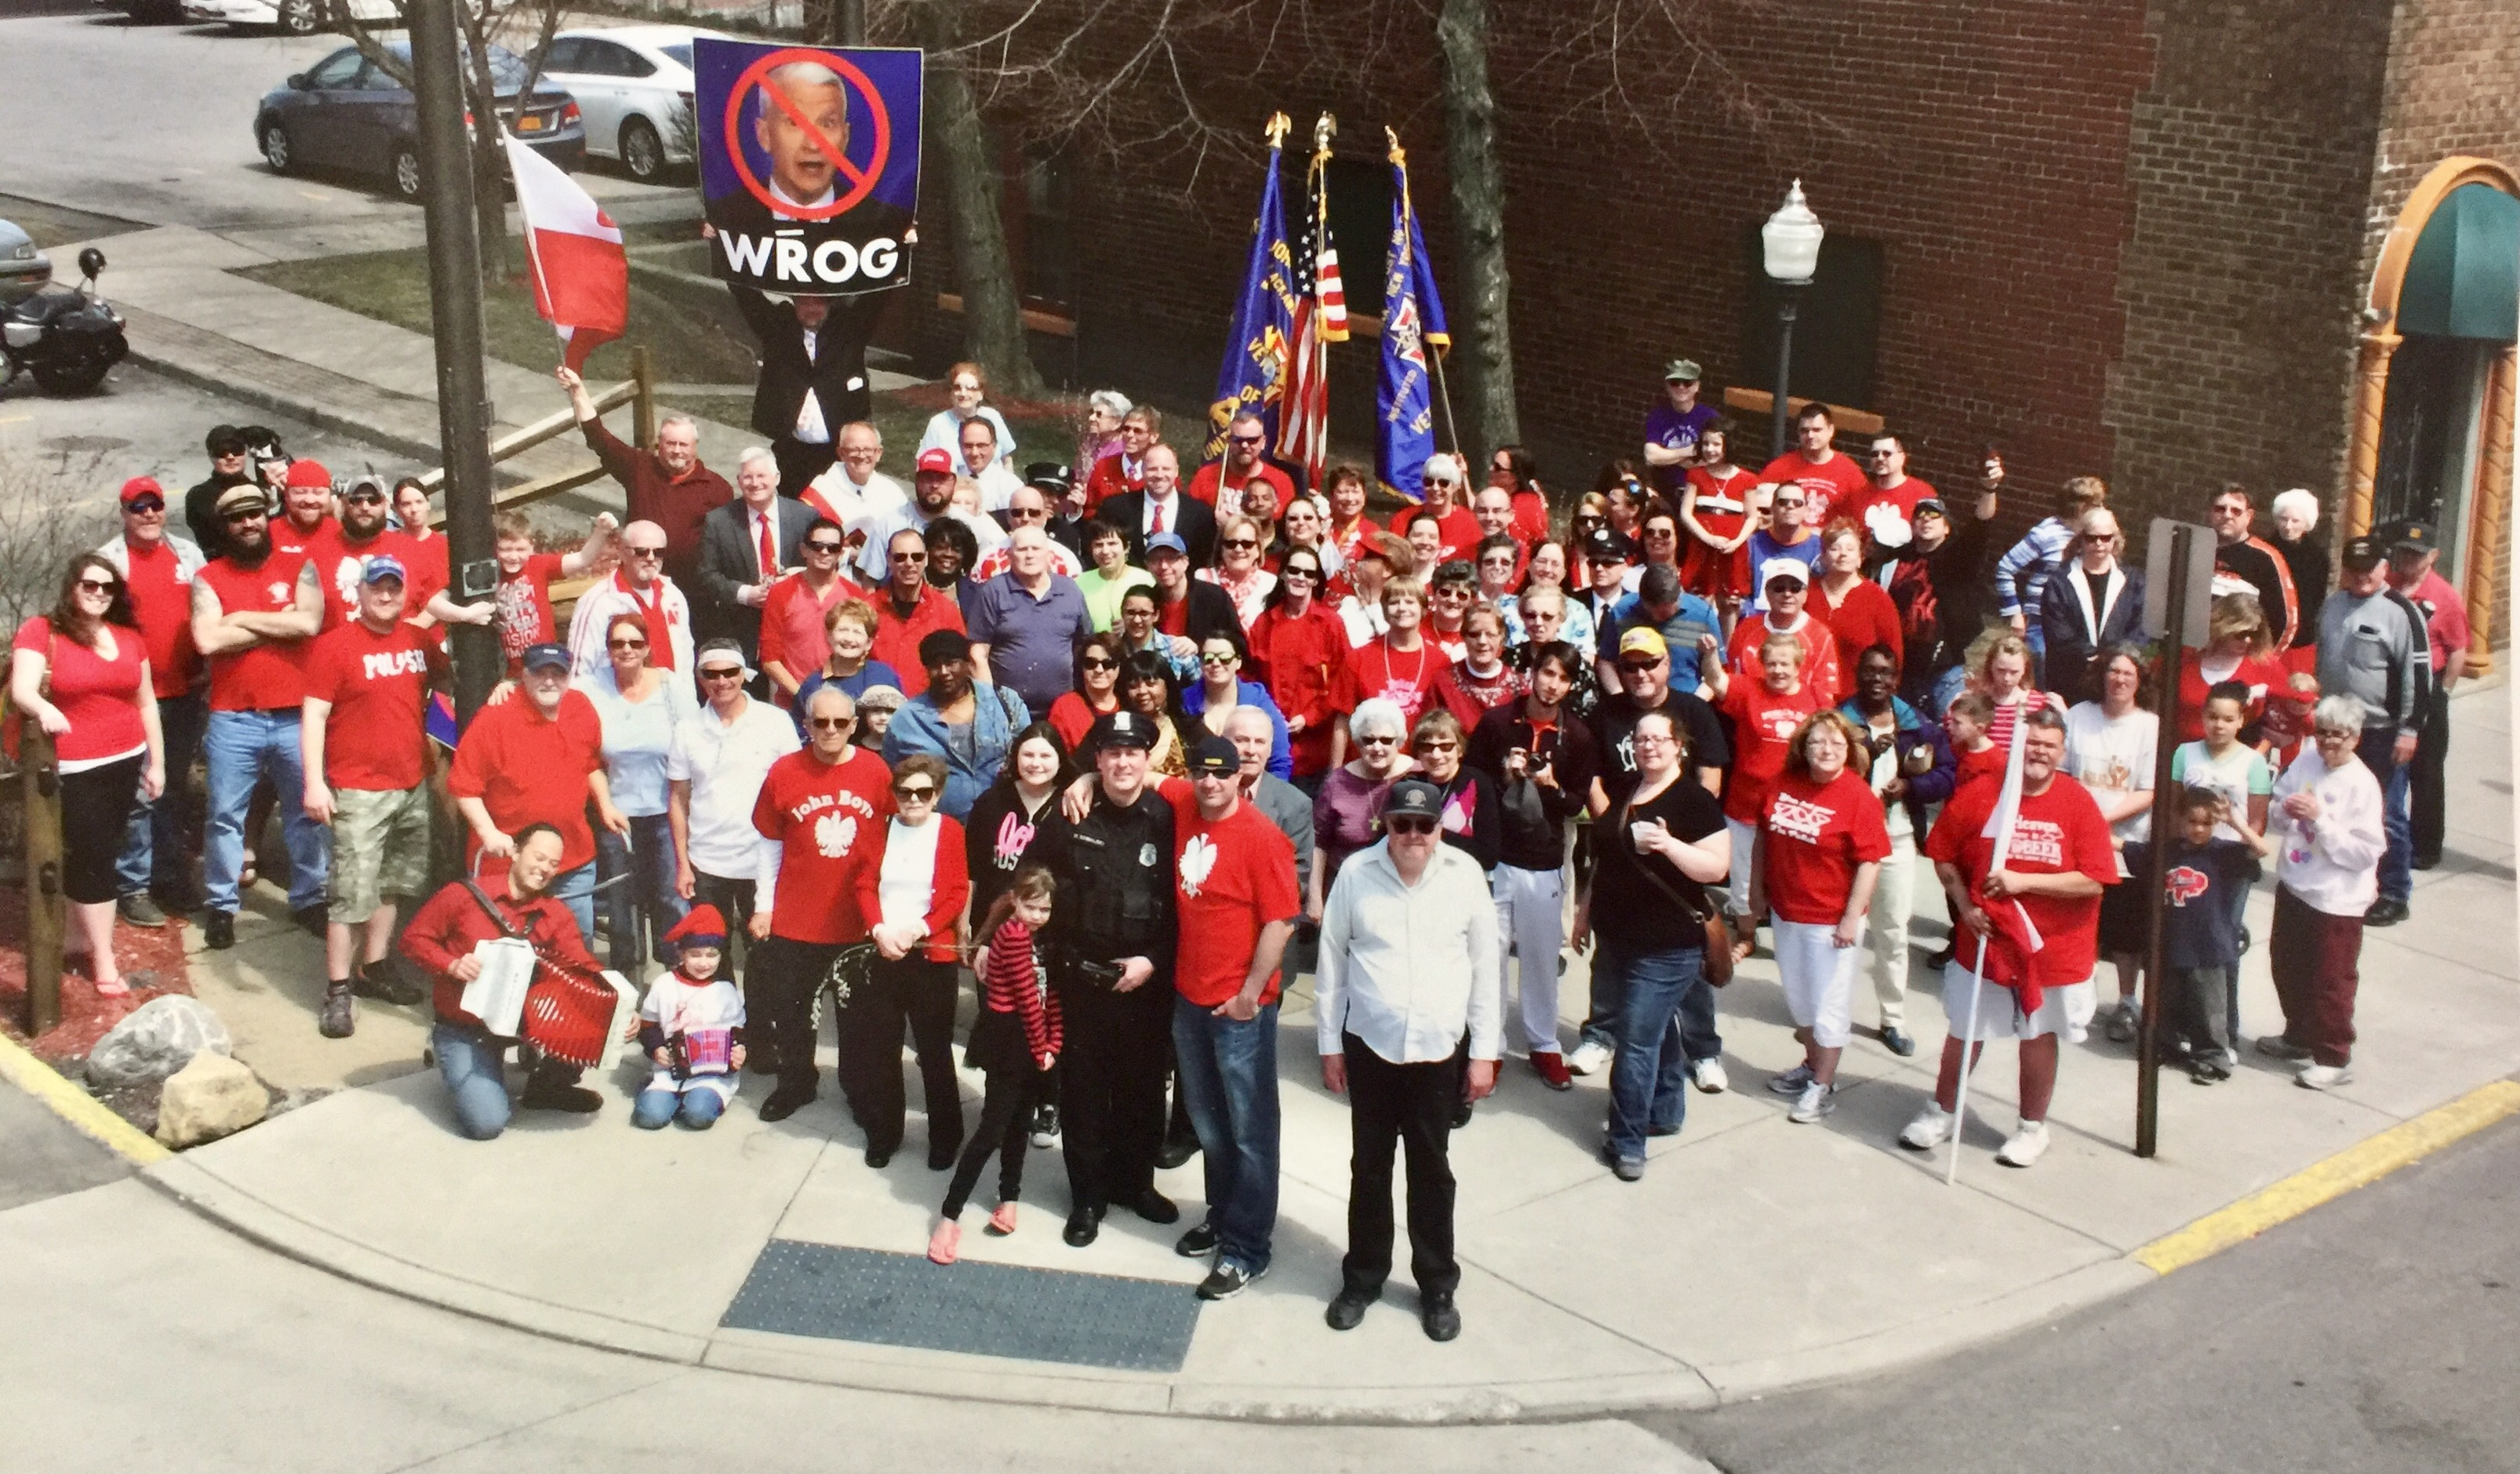 Warm day in Lackawanna marks  Shortest Dyngus Day Parade. Photo by Richard Sterling.